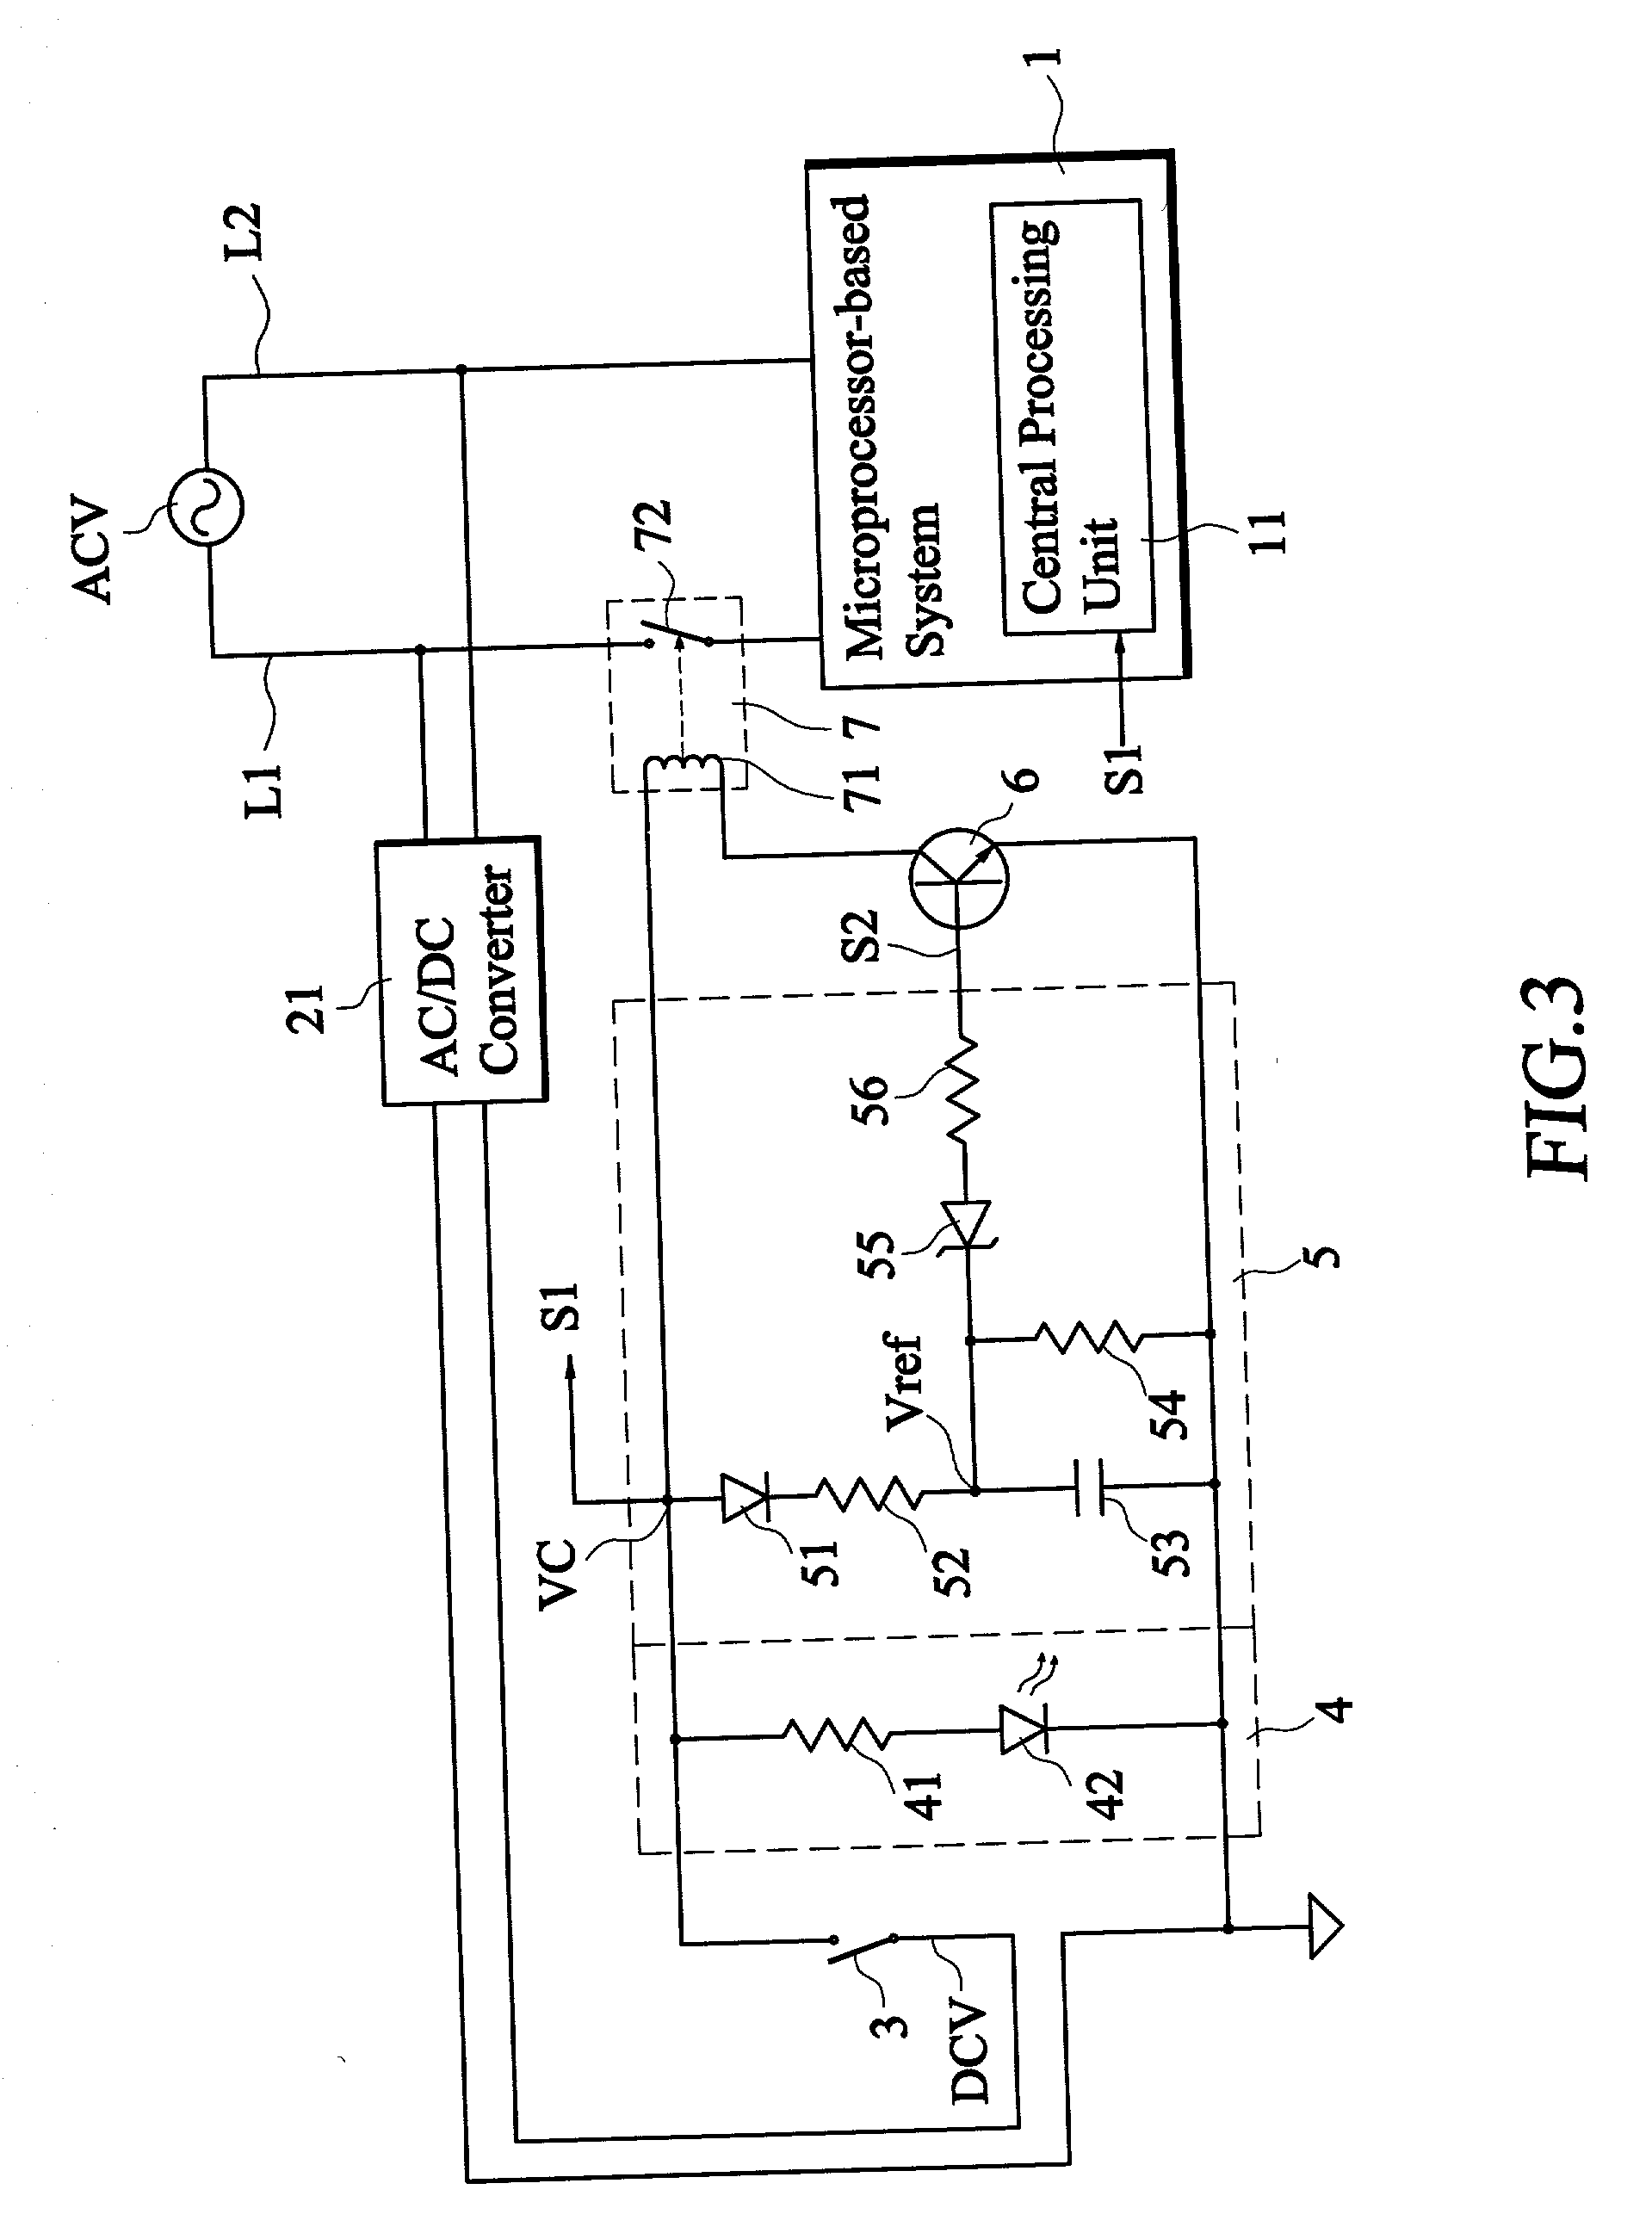 Power Control Circuit With Power Off Time Delay Control